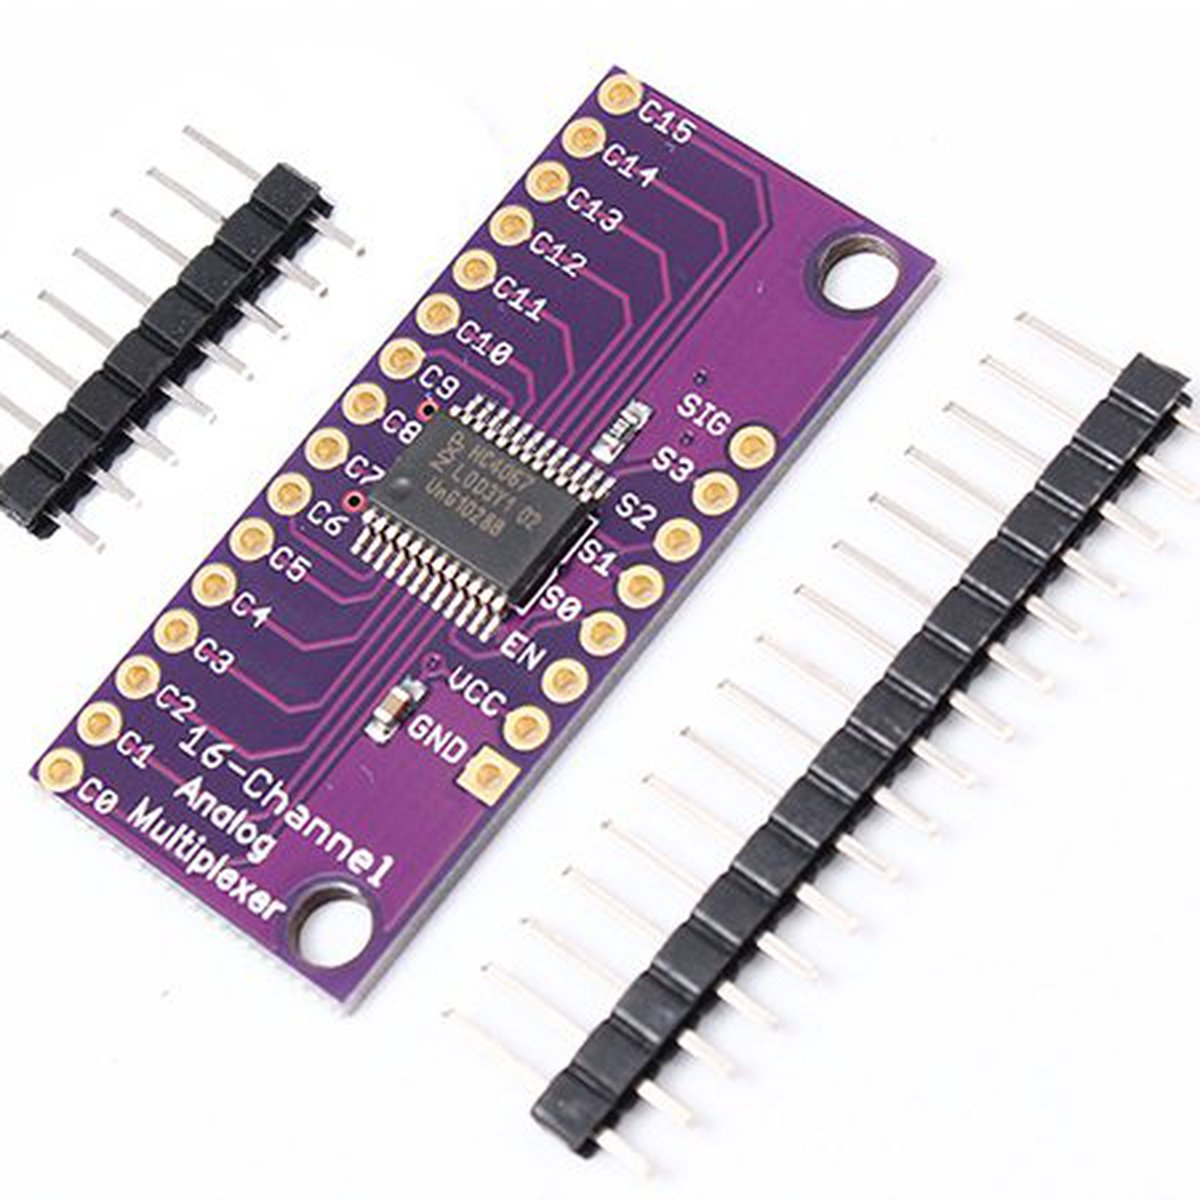 hight resolution of cd74hc4067 analog digital mux breakout board 5279 from icstation on tindie